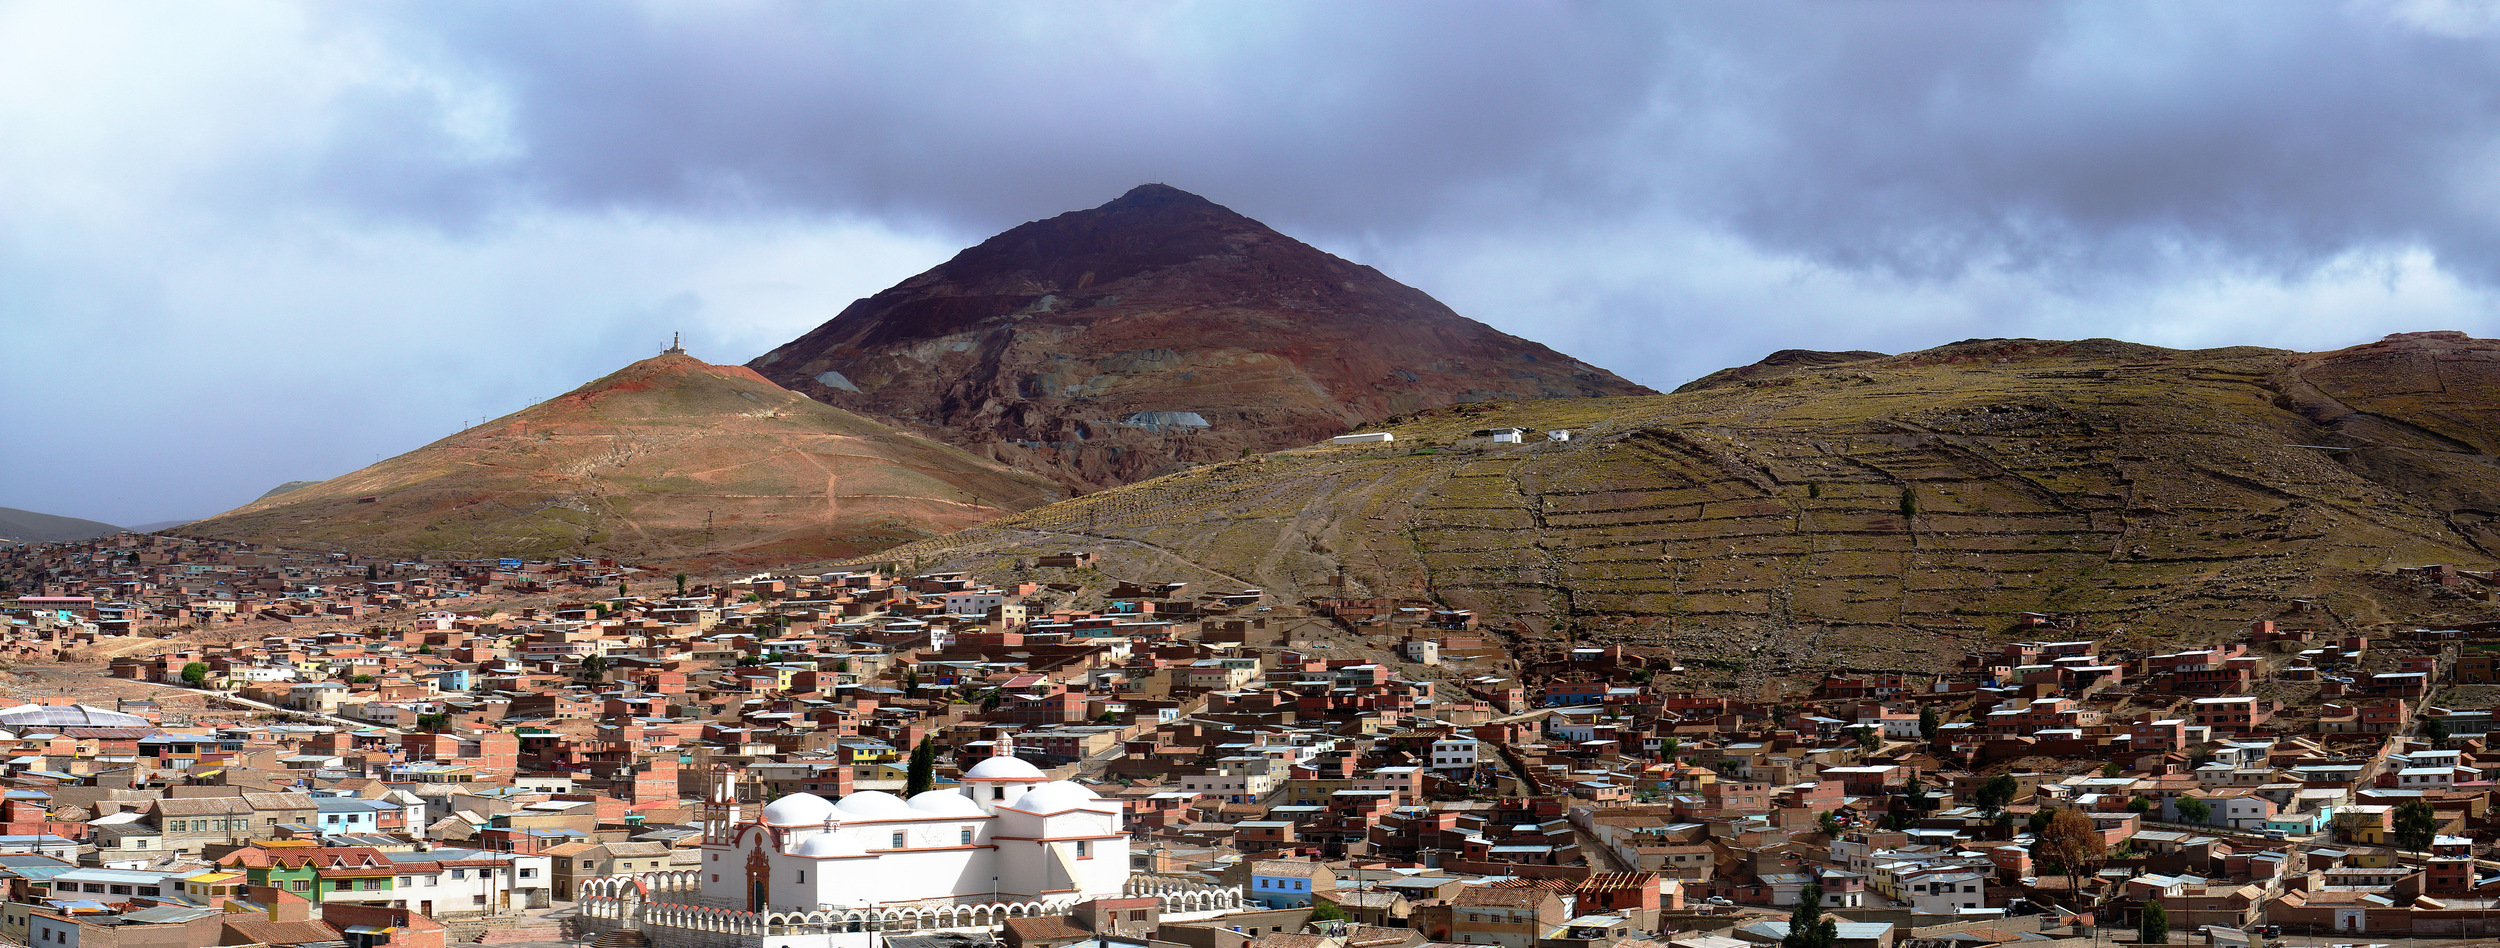 View of Cerro Rico with modern Potosí in the foreground. The mountain was thought to be made of solid silver. (  Source    marked for reuse )